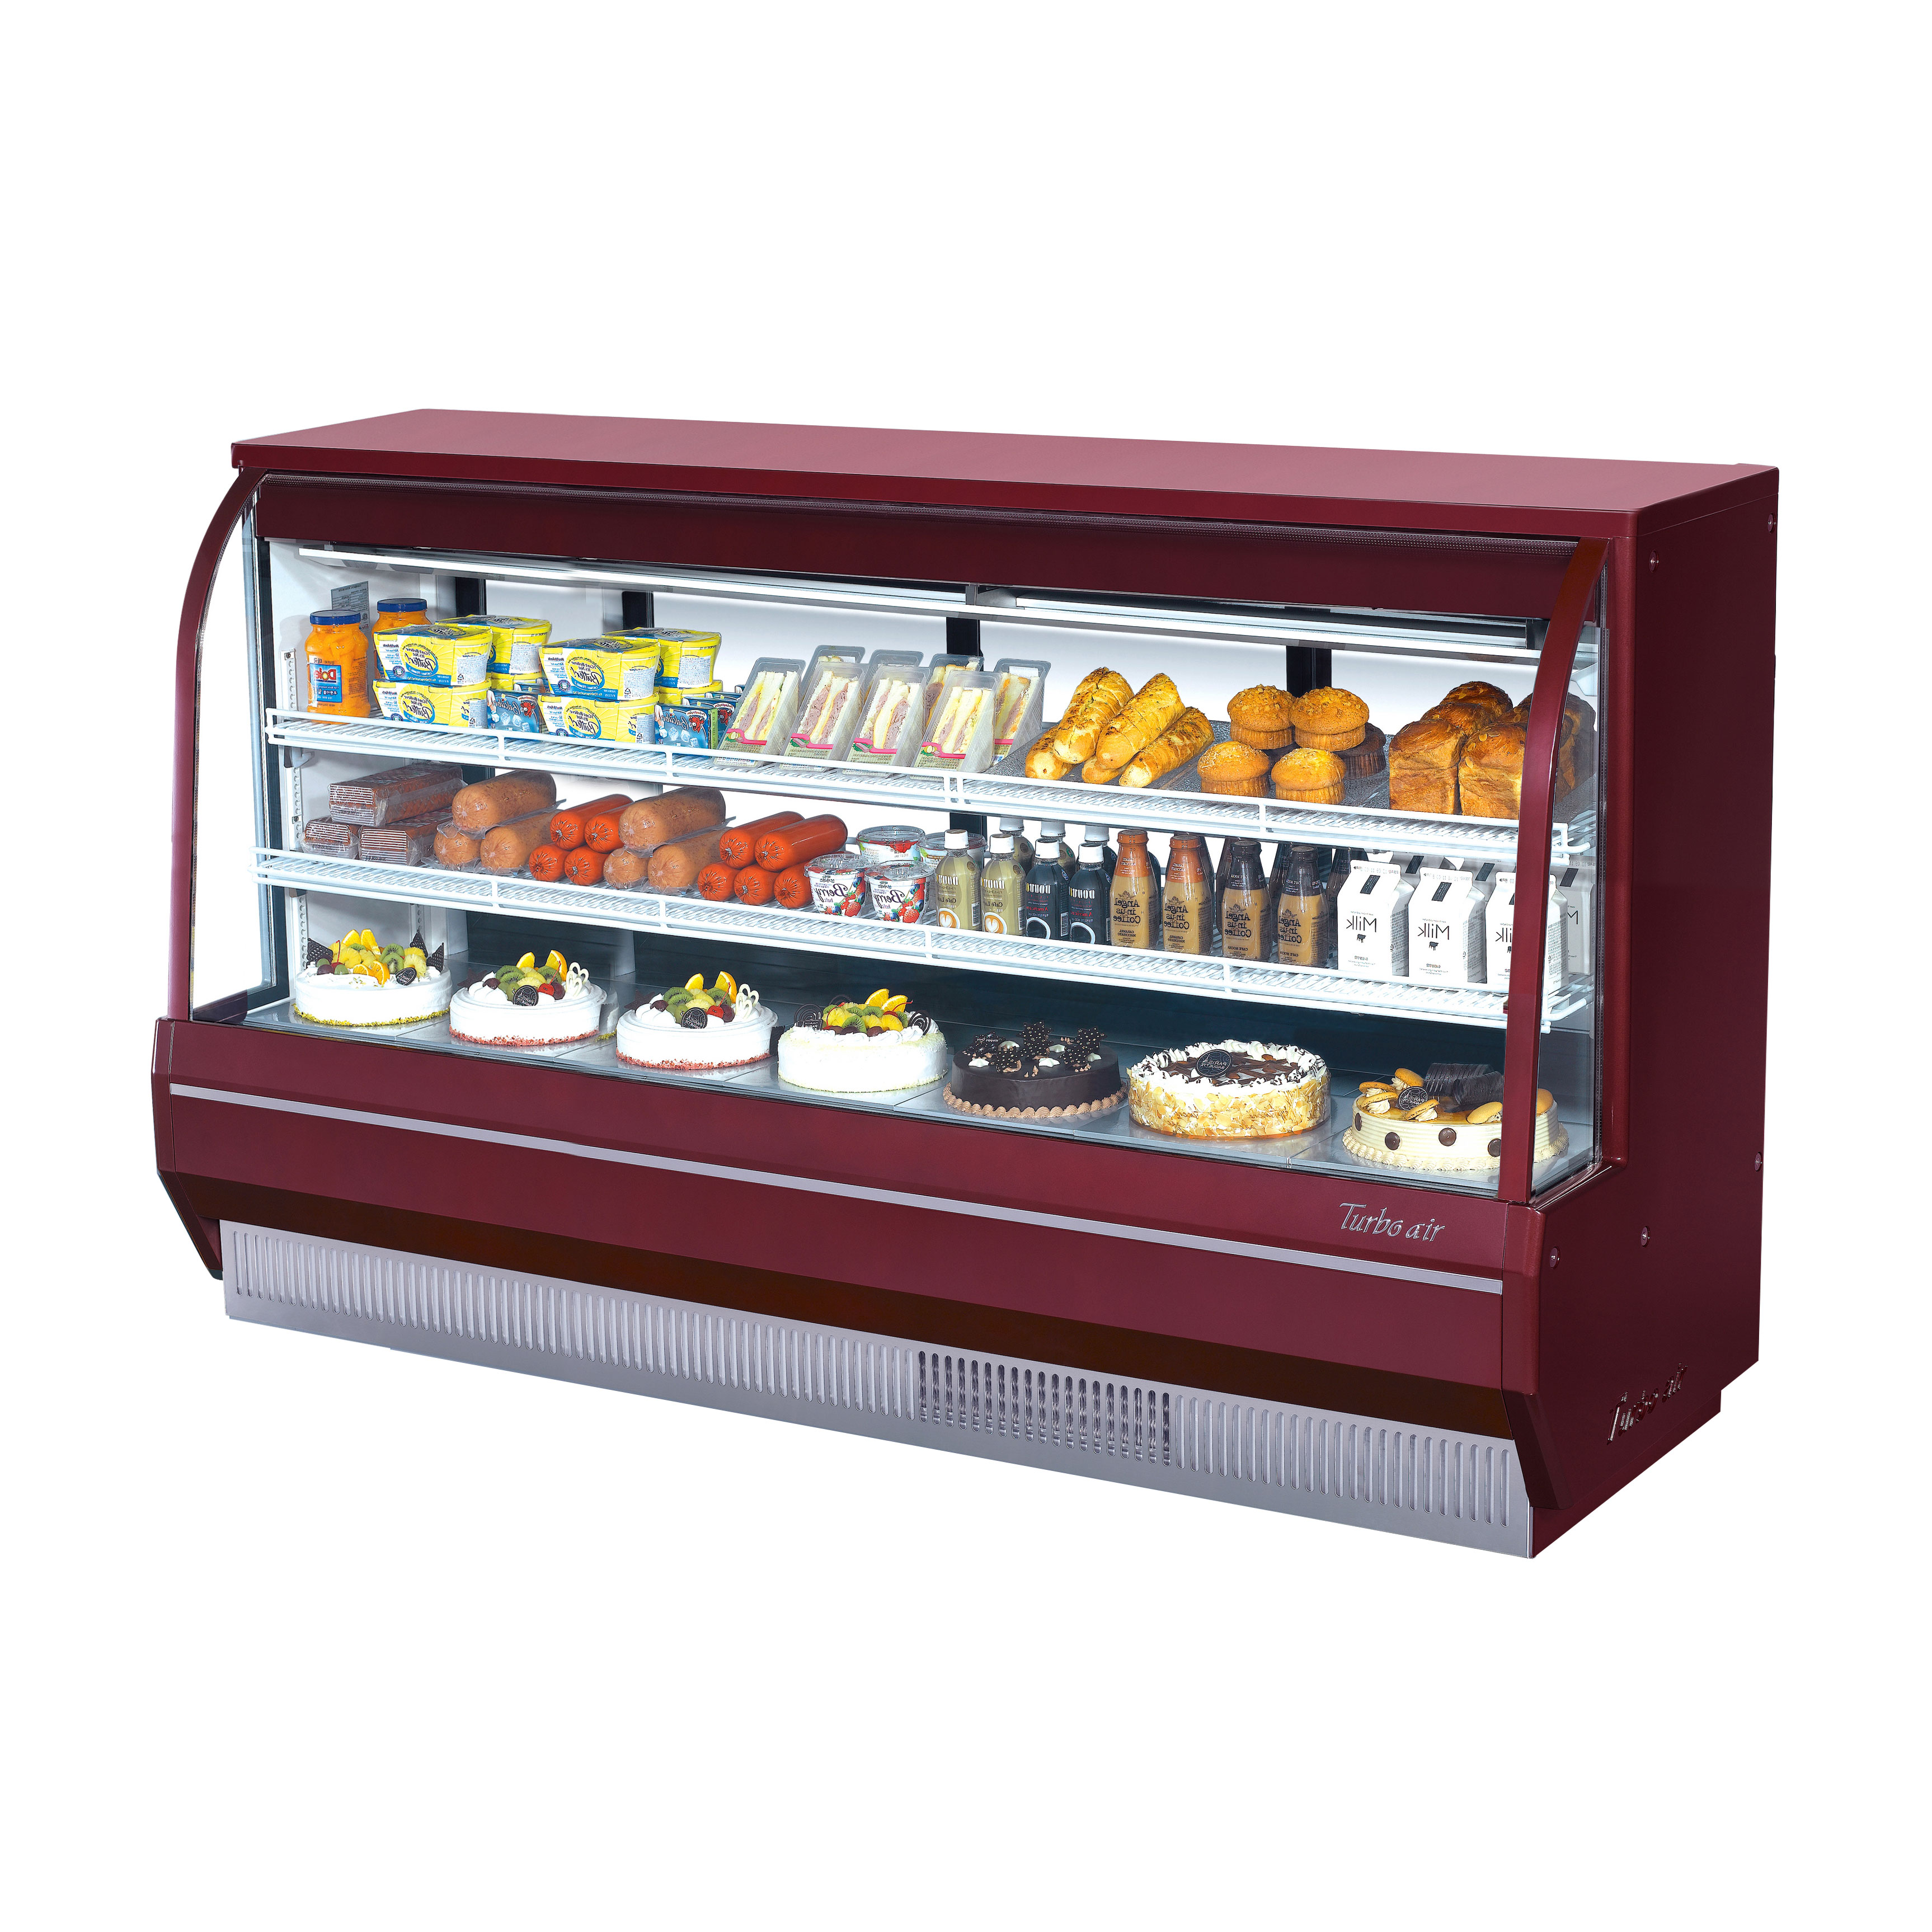 Turbo Air TCDD-96-4-H-R display case, refrigerated deli